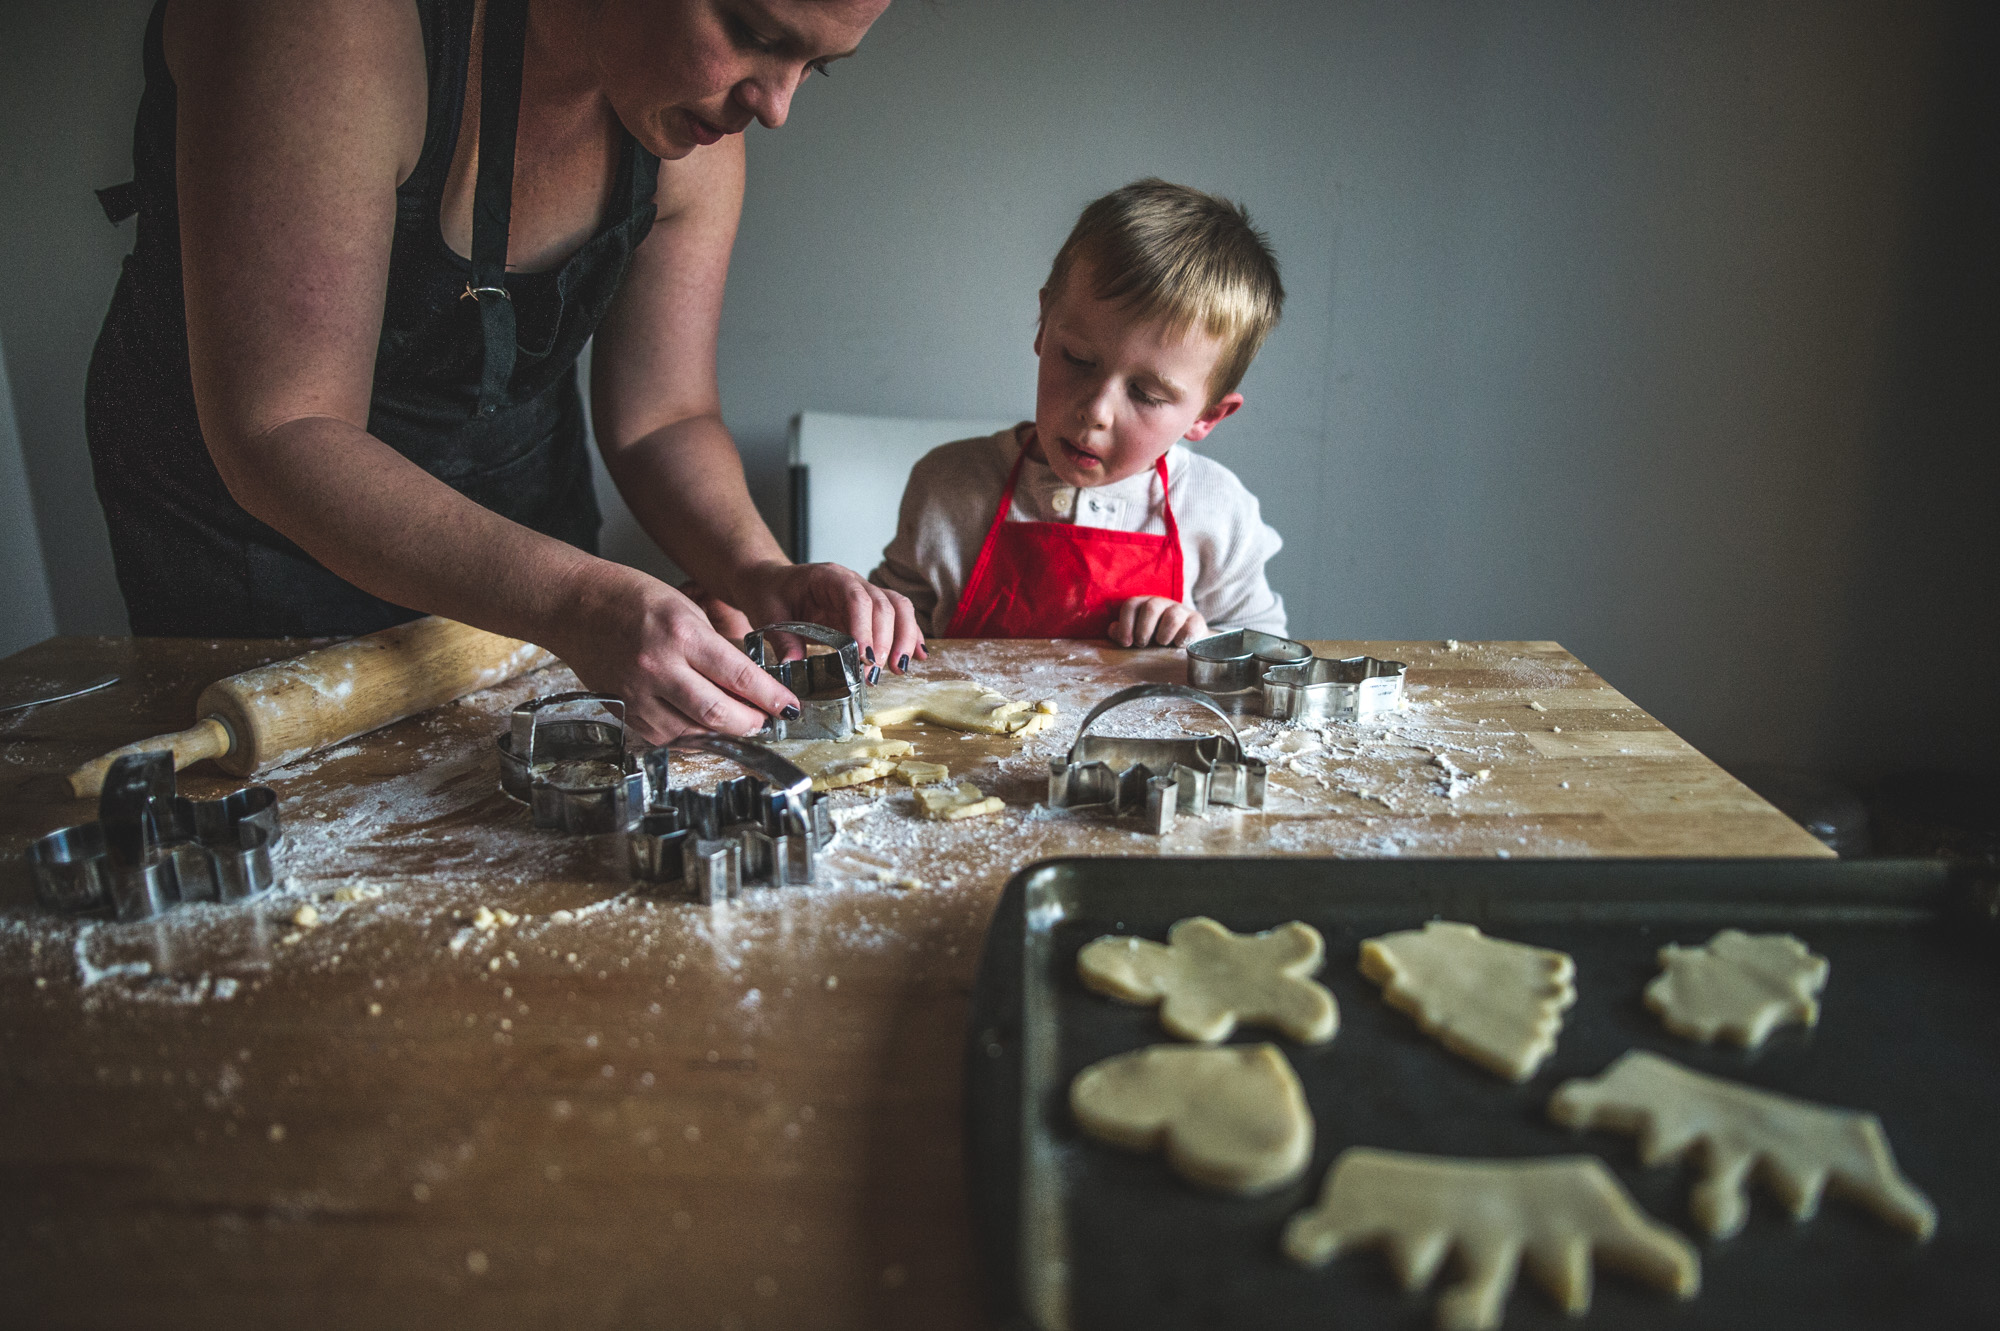 Color photo of a mother and son wearing aprons and making Christmas cookies together in Aurora, Colorado